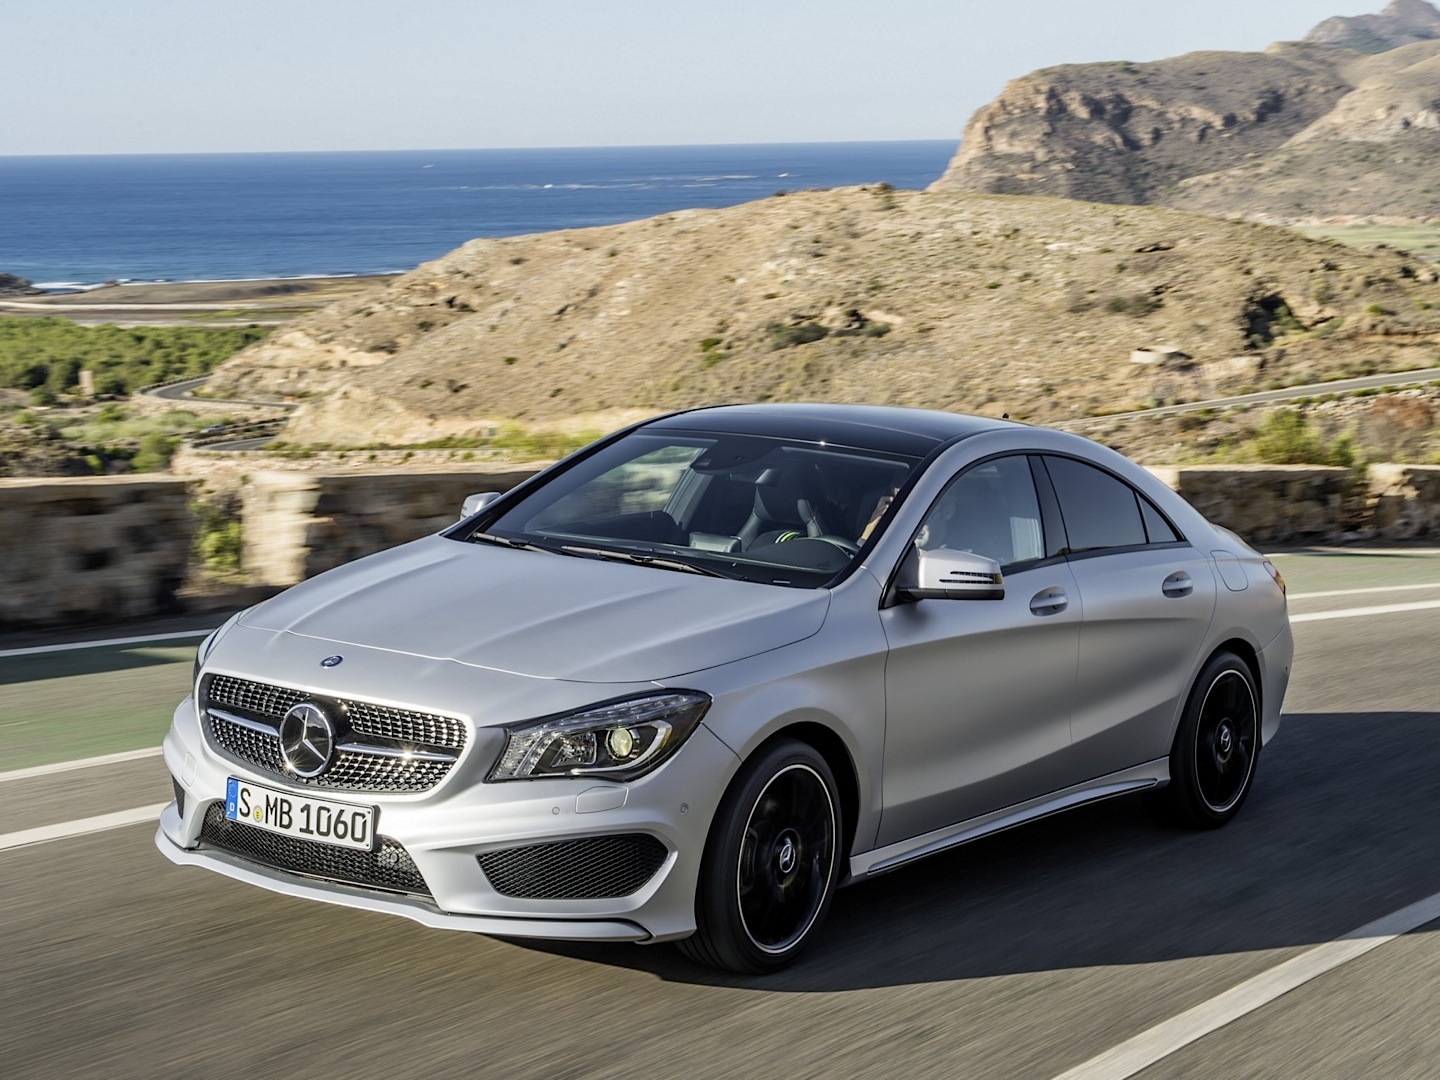 2014 mercedes benz cla 250 gets rated by the epa for Mercedes benz cla 250 review